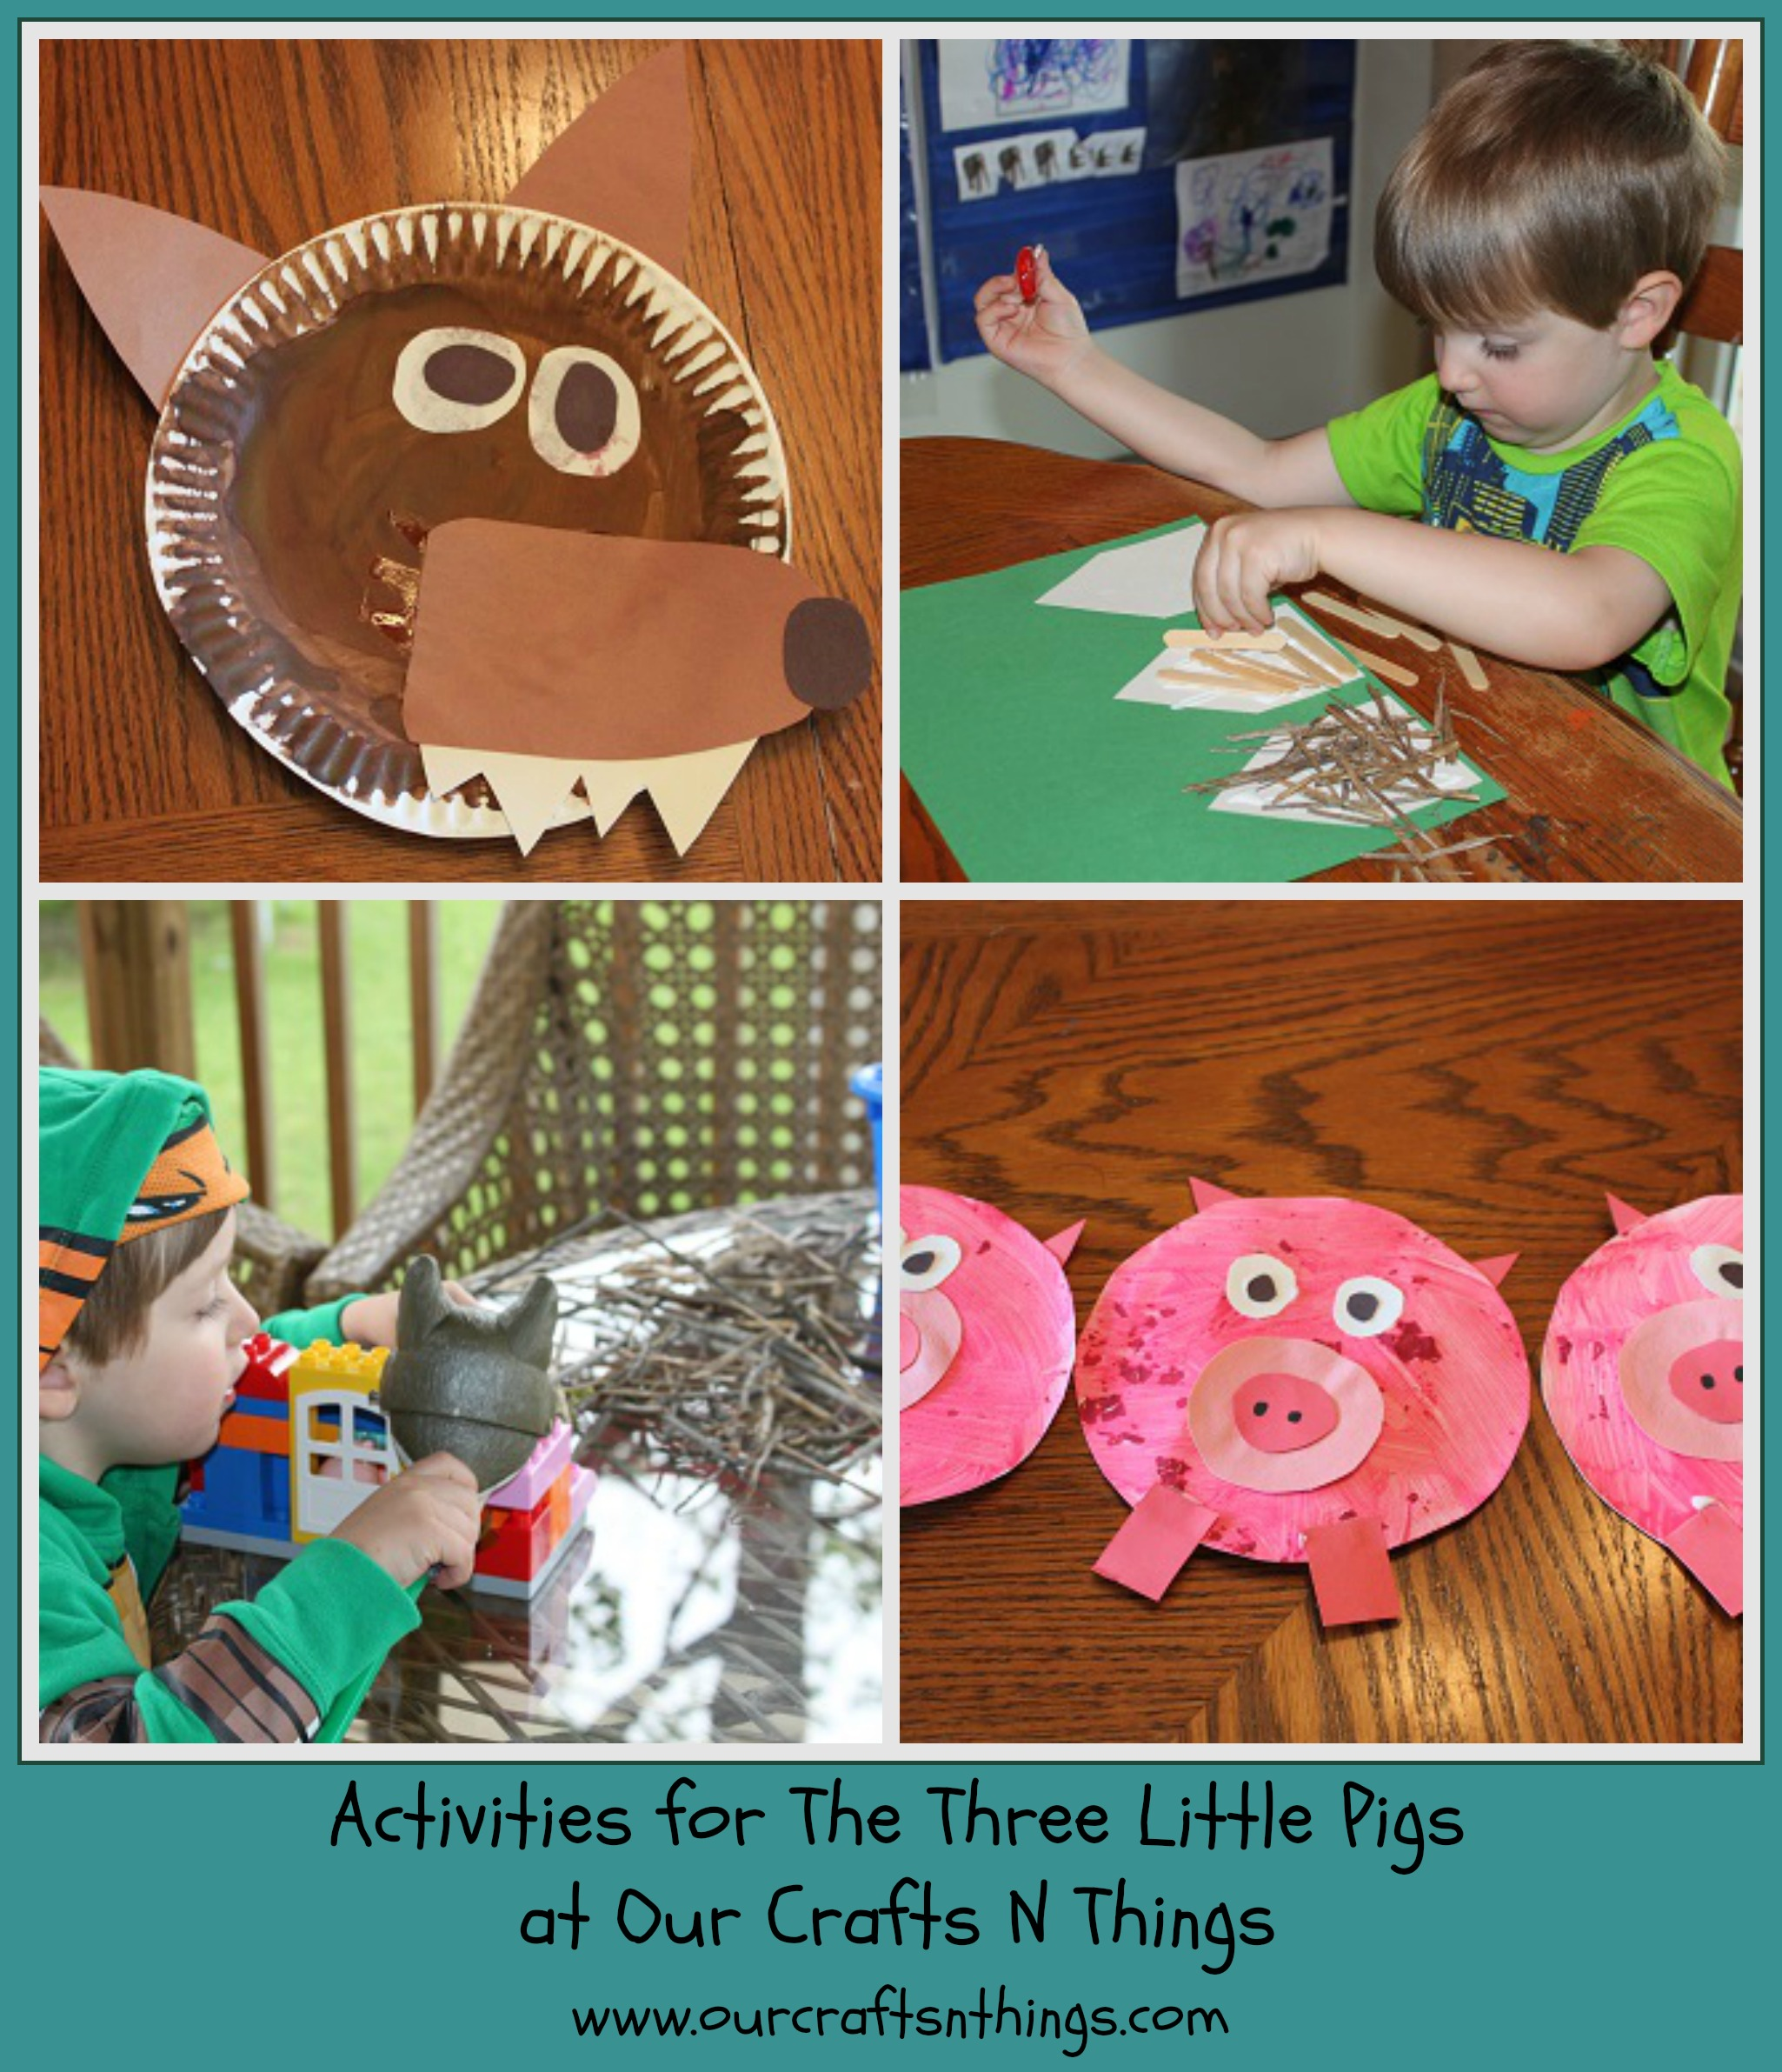 Our Crafts N Things Blog Archive The Three Little Pigs